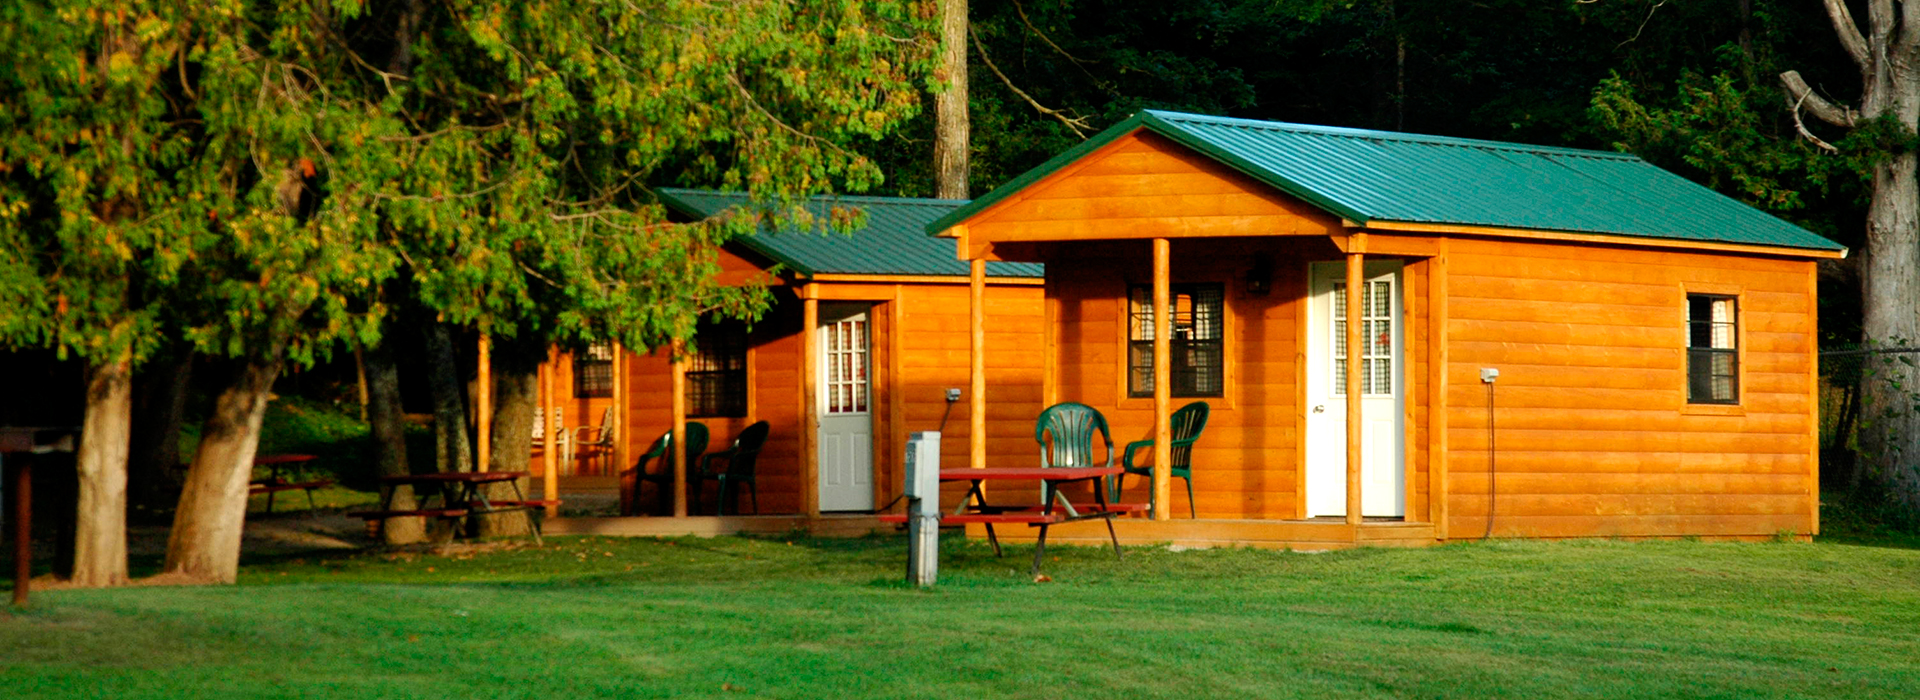 skedaddle public cabins media river russian barber near alaska campground cabin the camping